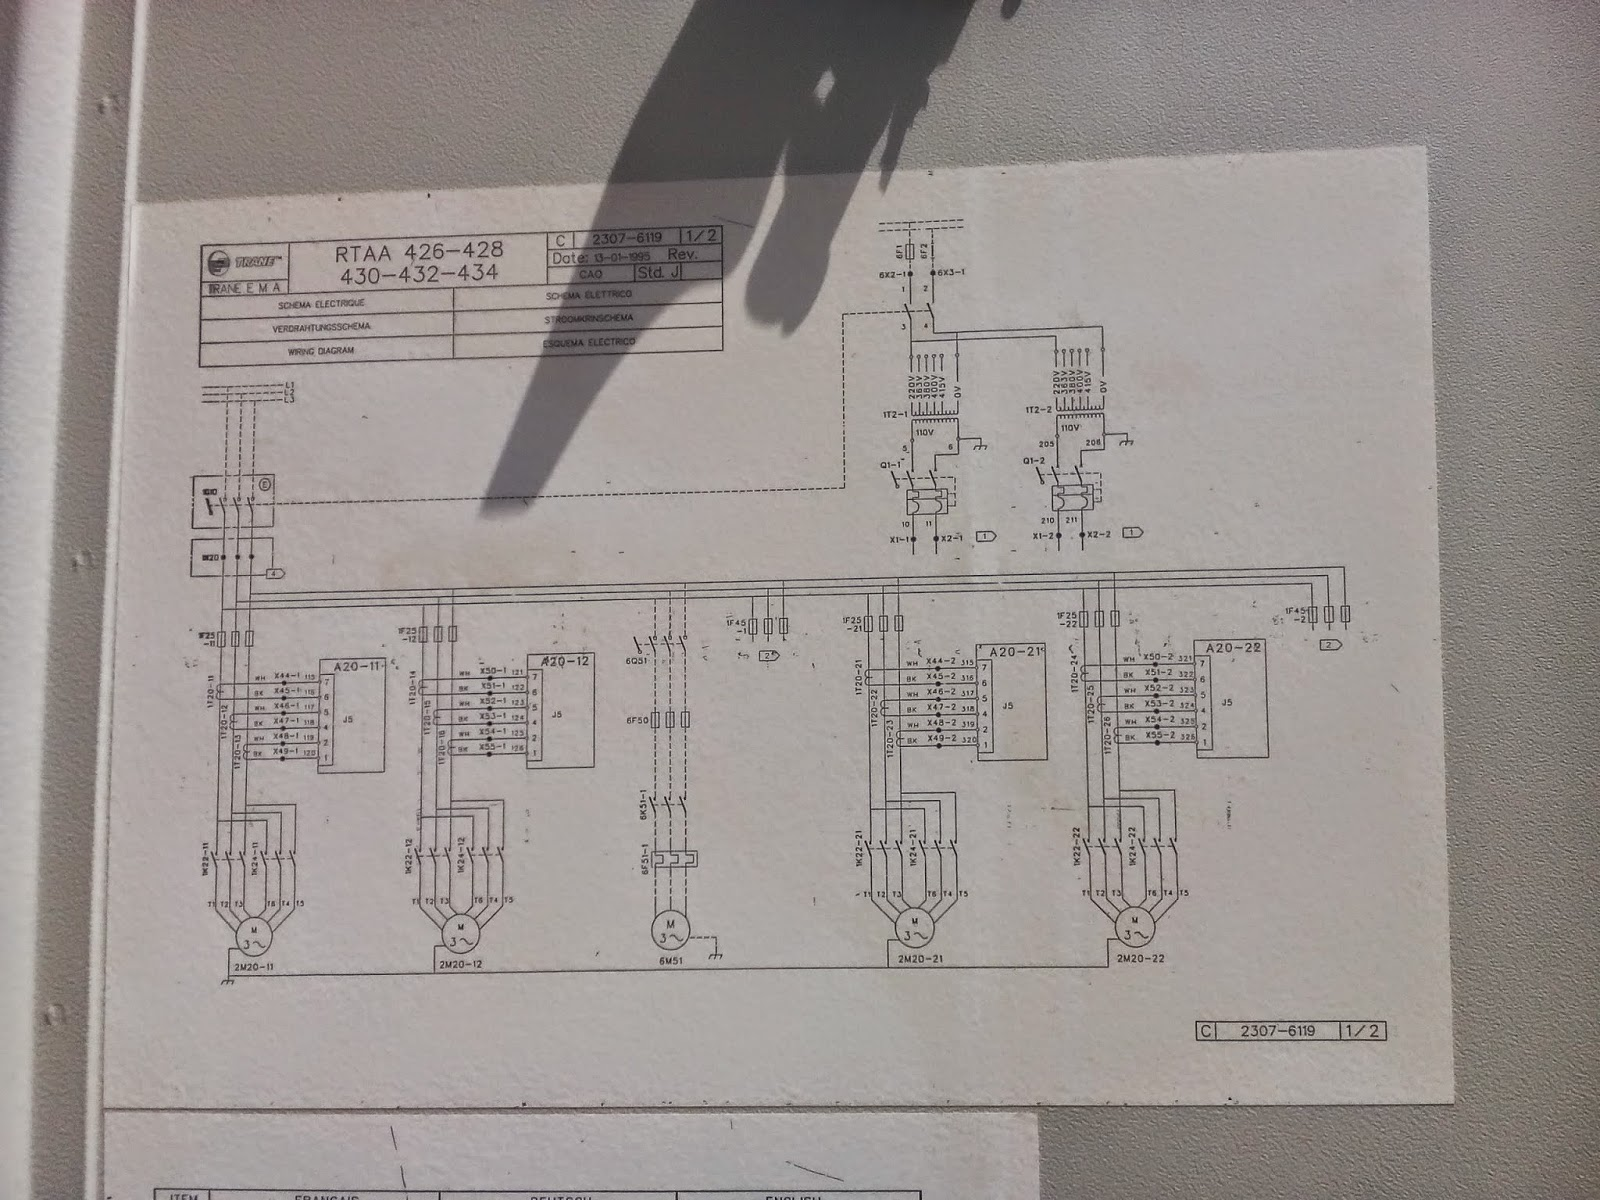 Trane Chiller Wiring Diagram Apexi Safc Hvac Chillers Heatpump Air Cooled Control Rtaa Series